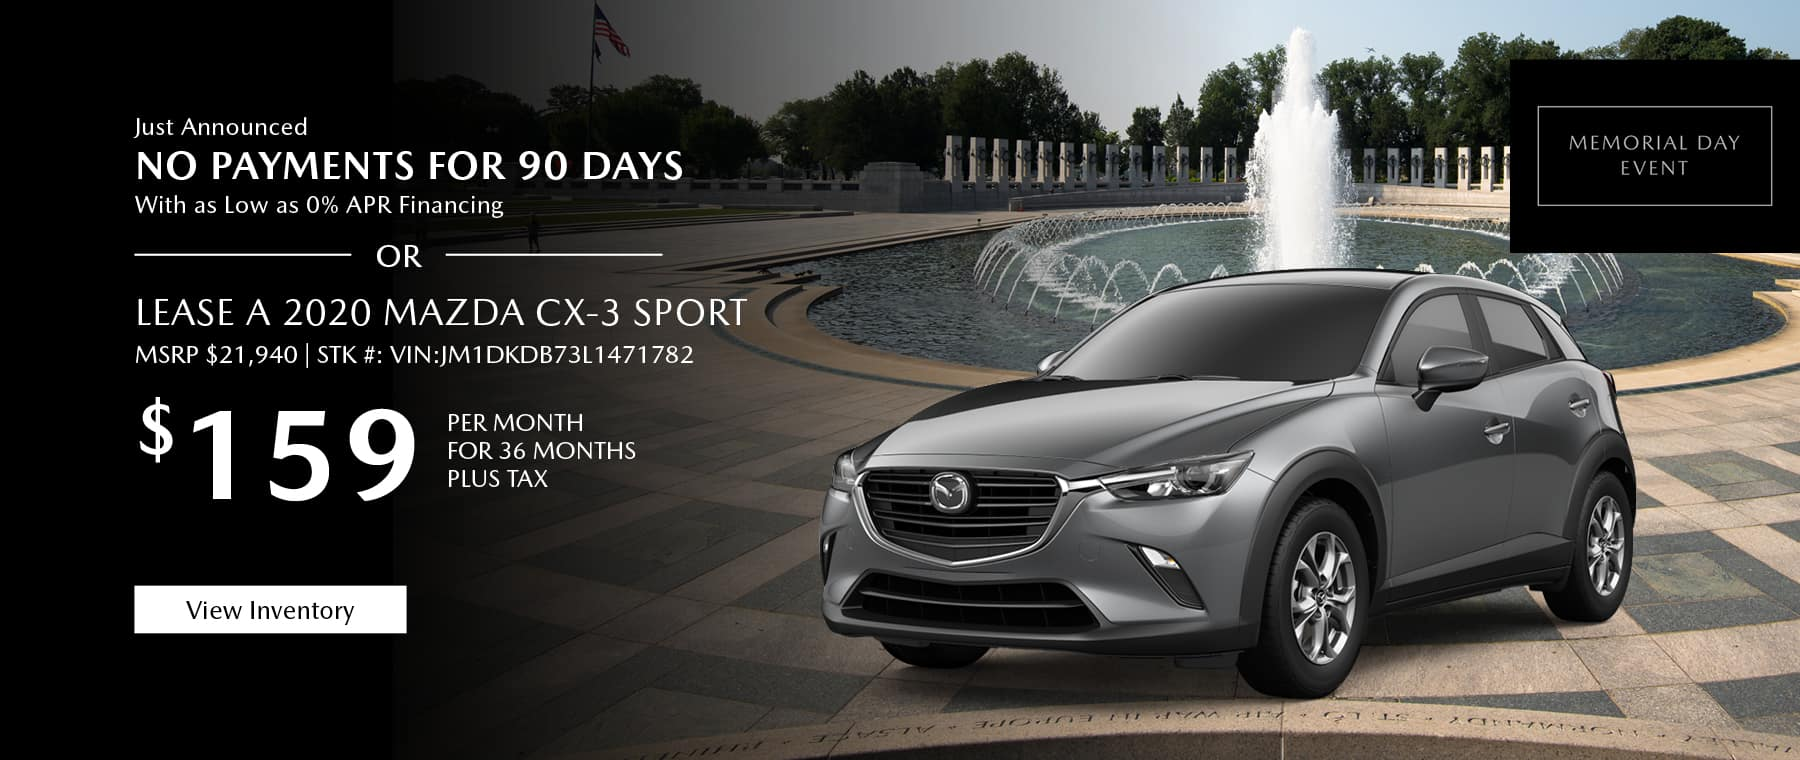 Just Announced, No payments for 90 days with as low as %0 APR financing, or lease the 2019 Mazda CX-3 Sport for $159 per month, plus tax. Gunther will waive your first 2 lease payments. View inventory.